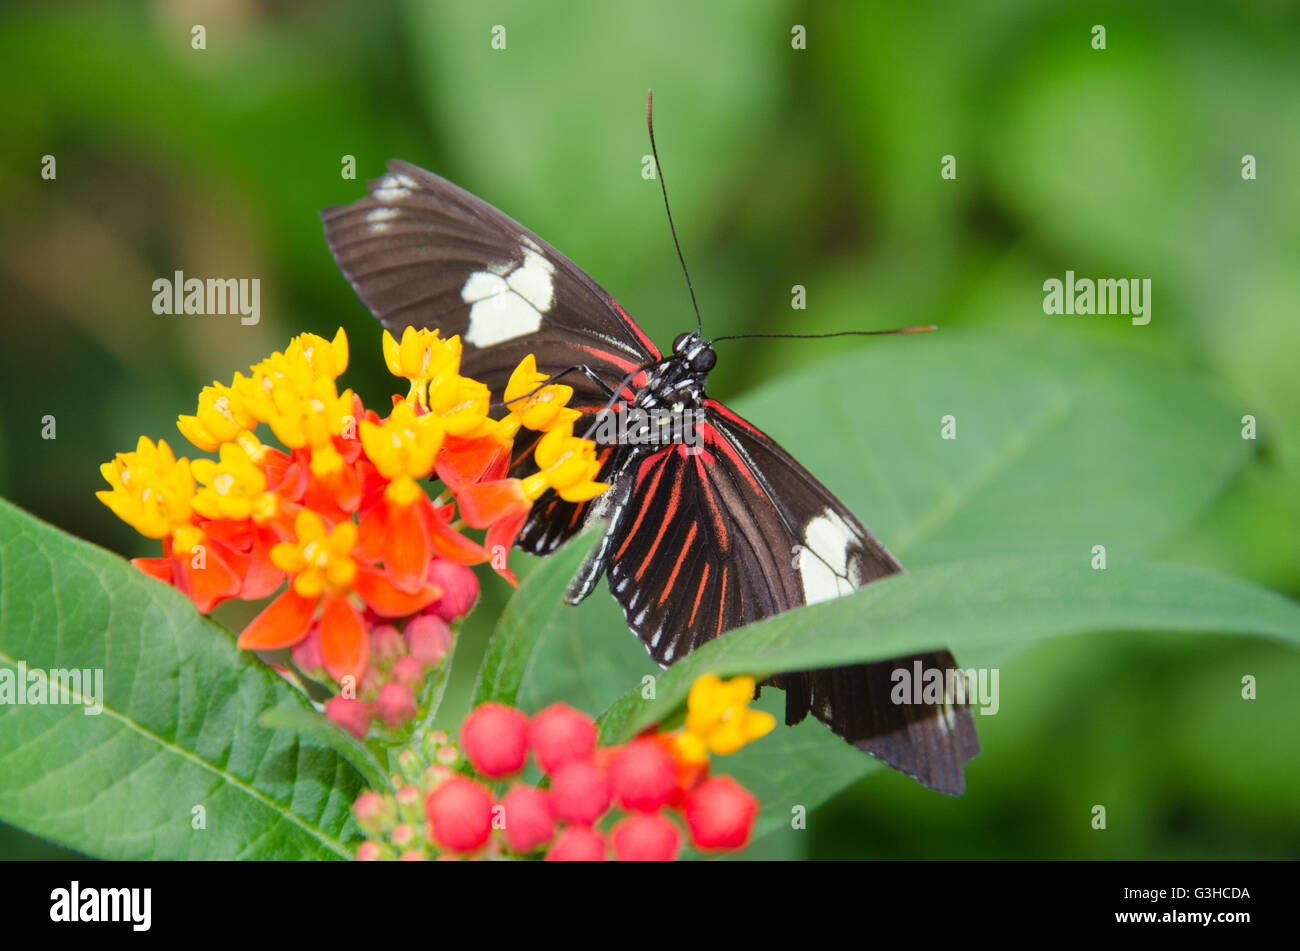 Heliconius doris butterfly hanging from a flower - Stock Image